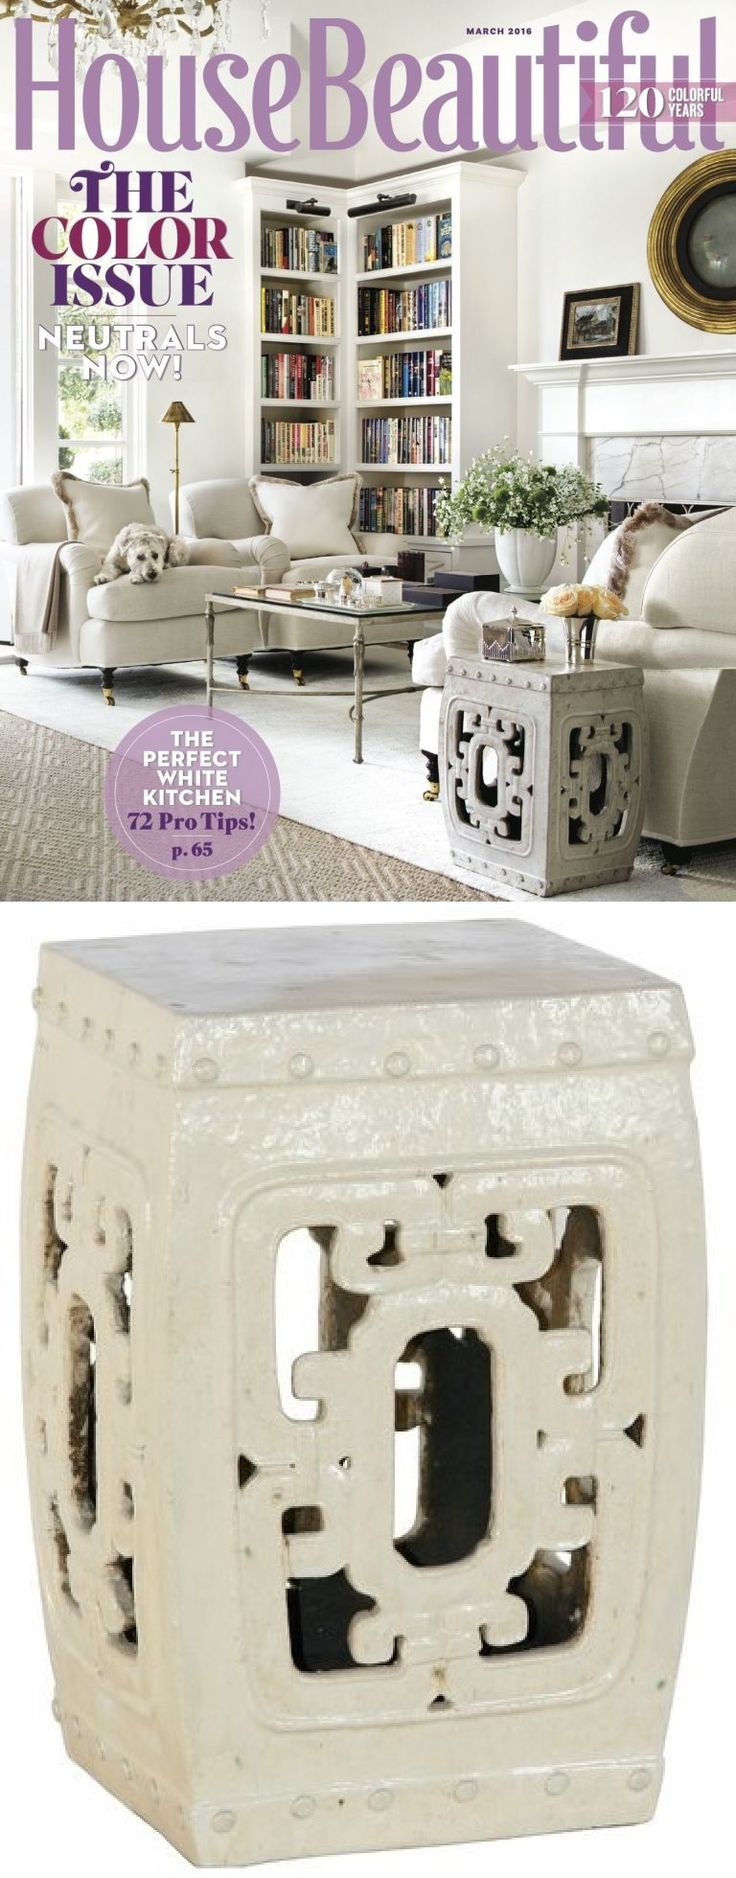 China Kitchen Palm Beach Gardens 17 Best Ideas About Ceramic Garden Stools On Pinterest Accent